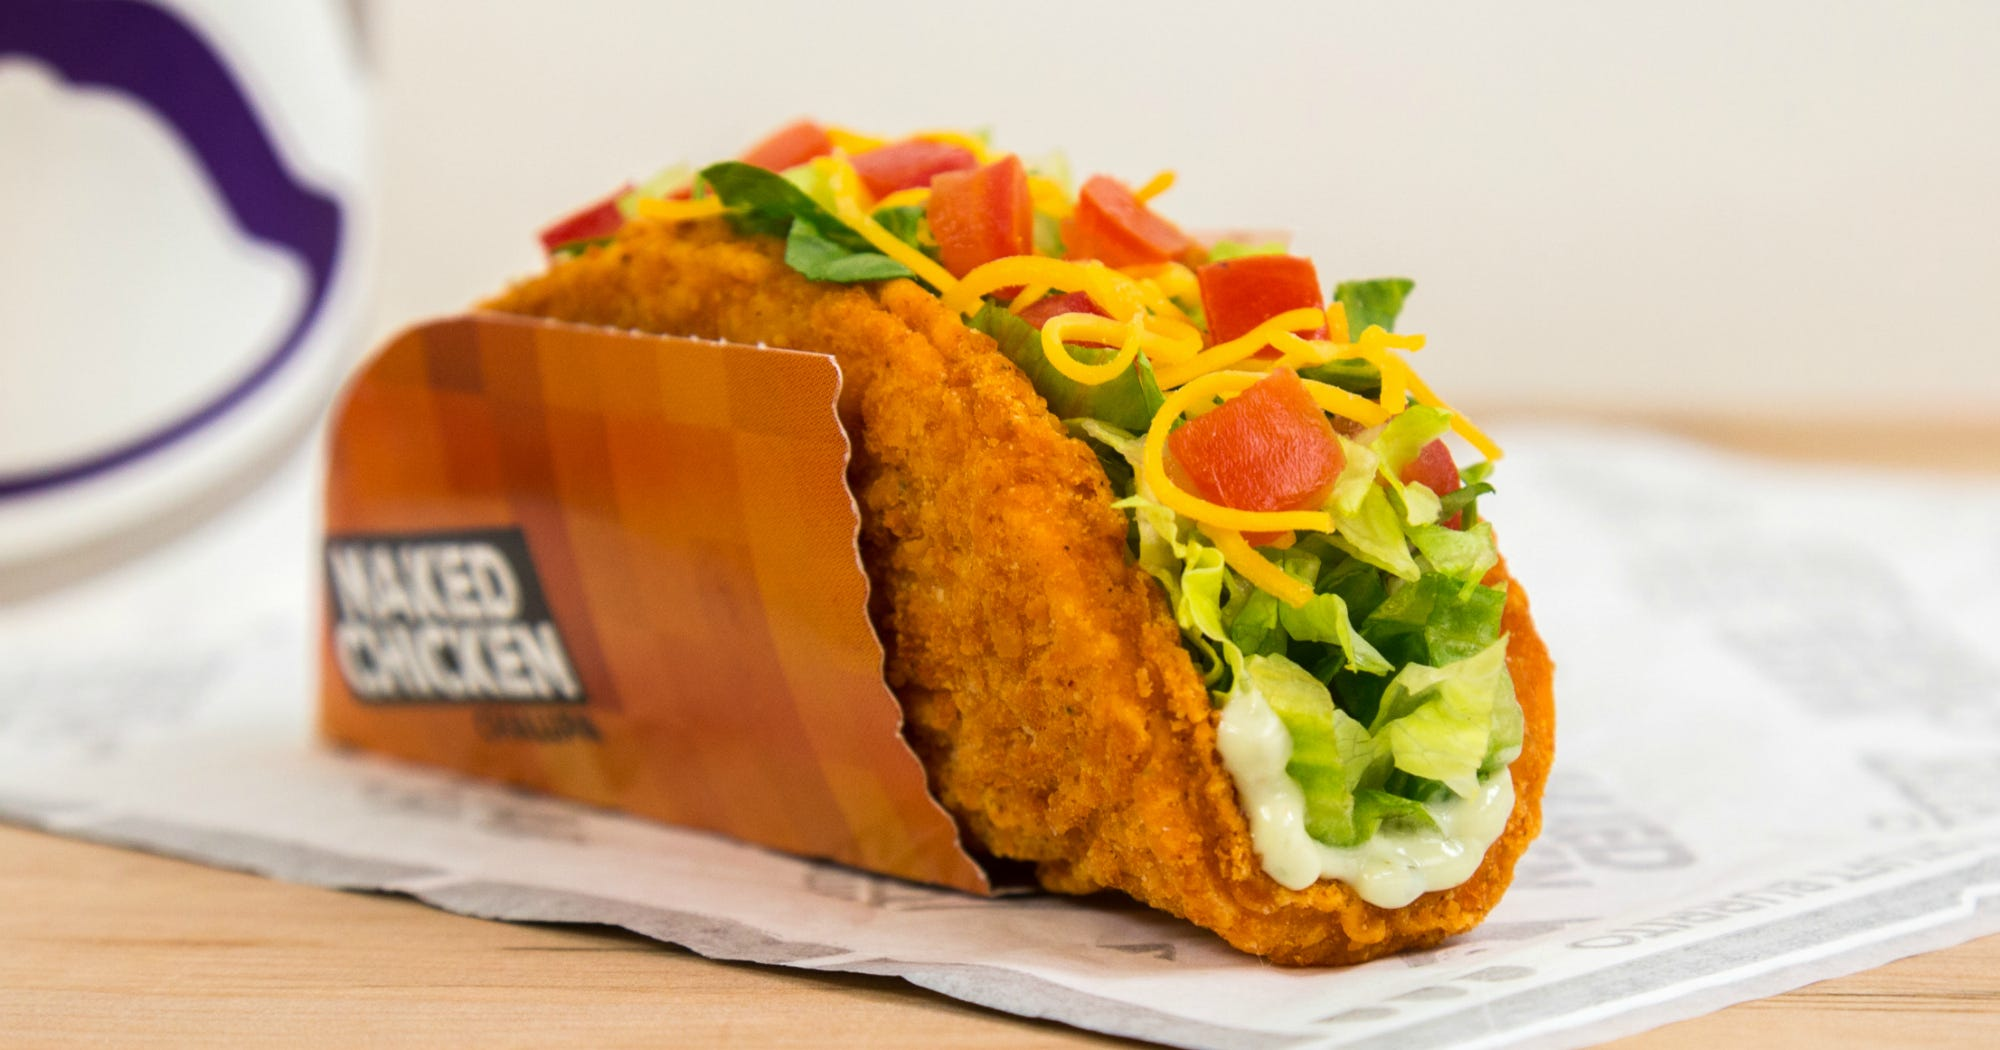 taco bell nutrition guide pdf